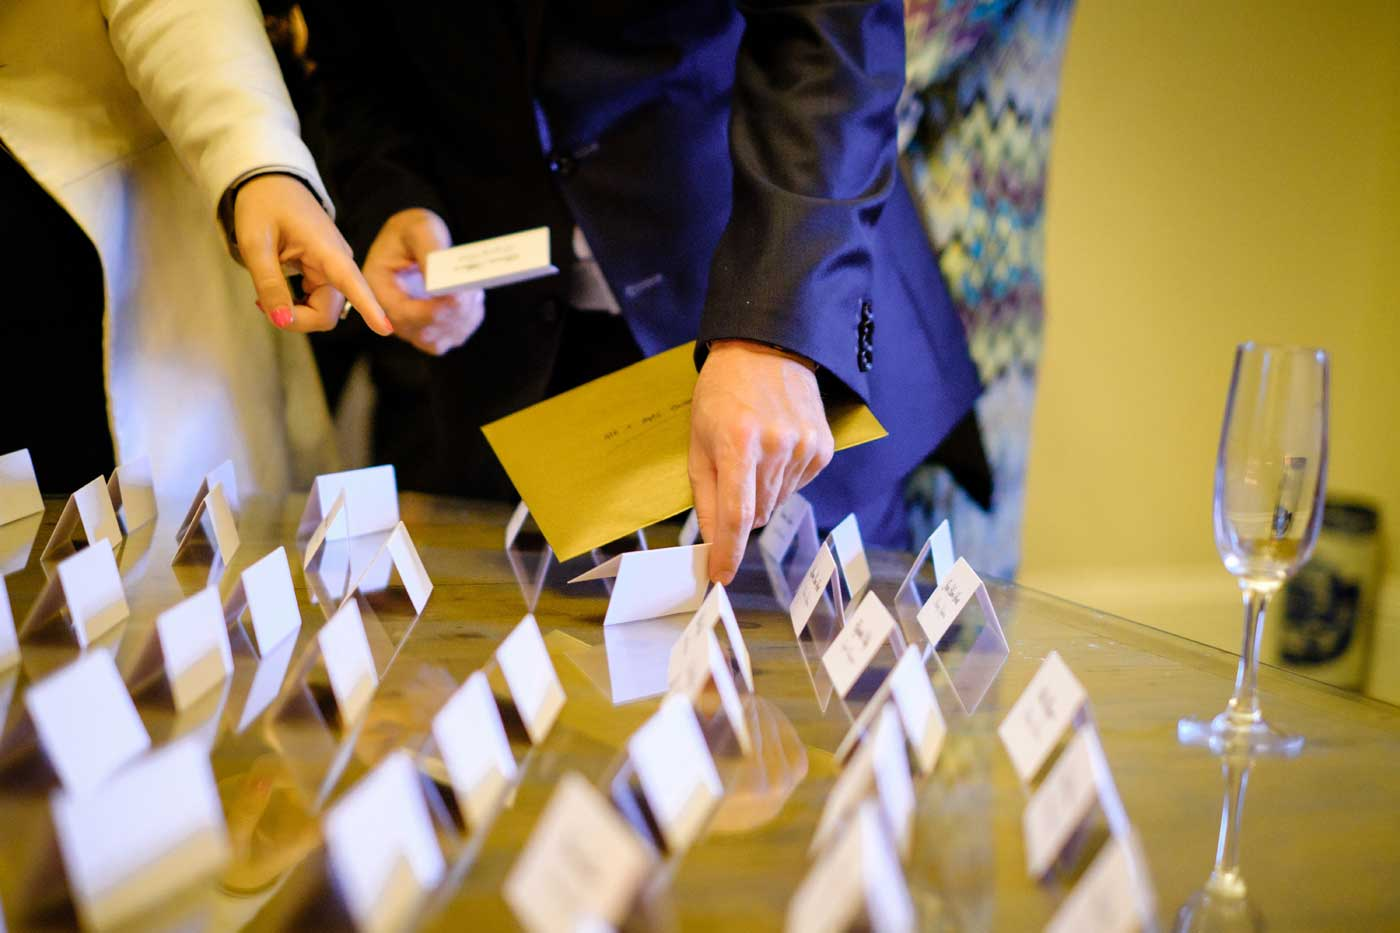 Wedding guests taking their placenames as they enter St Annes' Hall